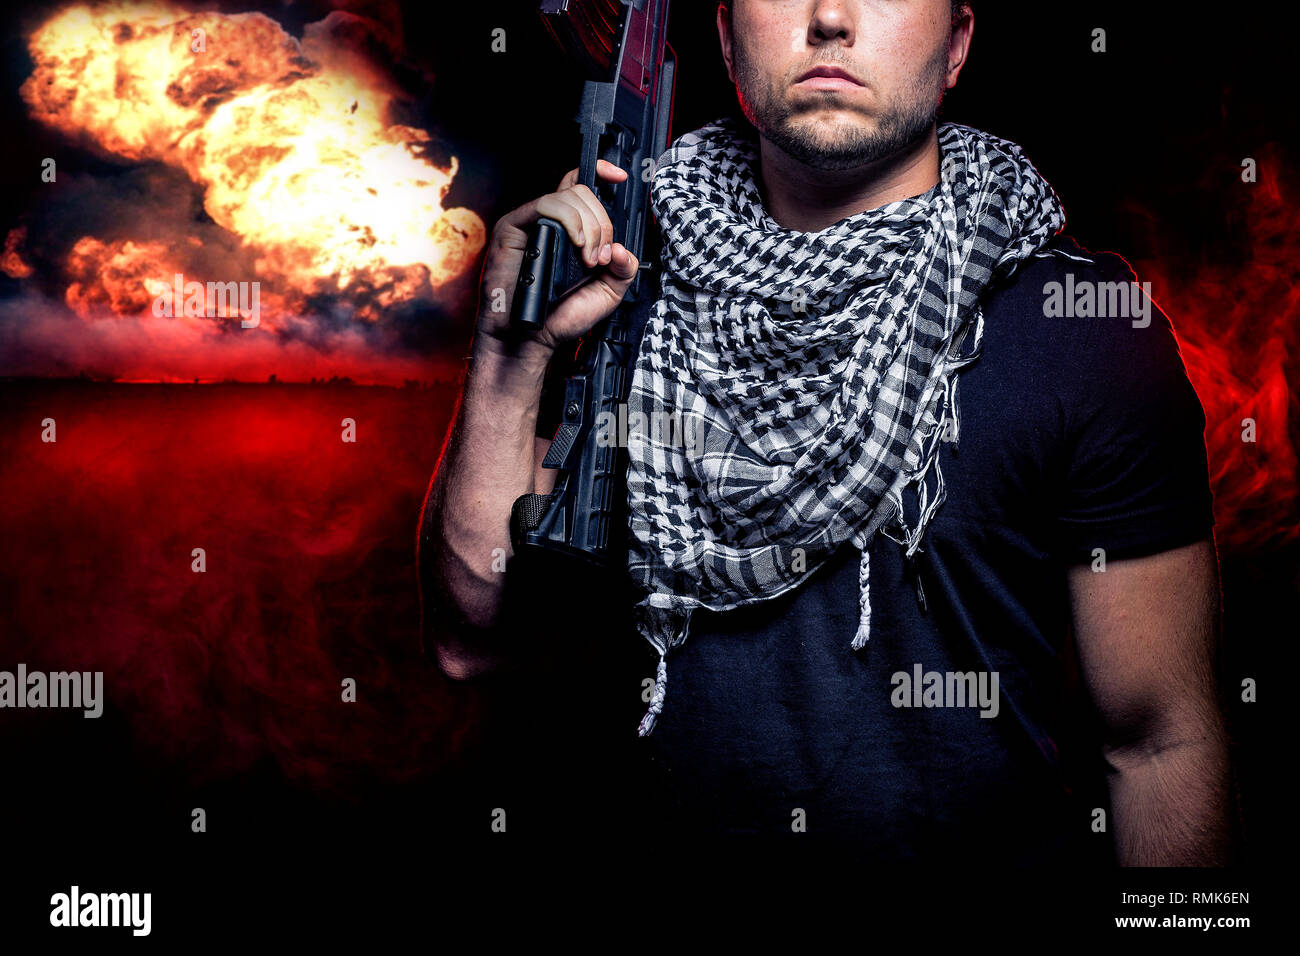 Soldier with a gun surviving bombs that are weapons of mass destruction or a nuclear war. The image depicts warfare and apocalyptic WW3. - Stock Image